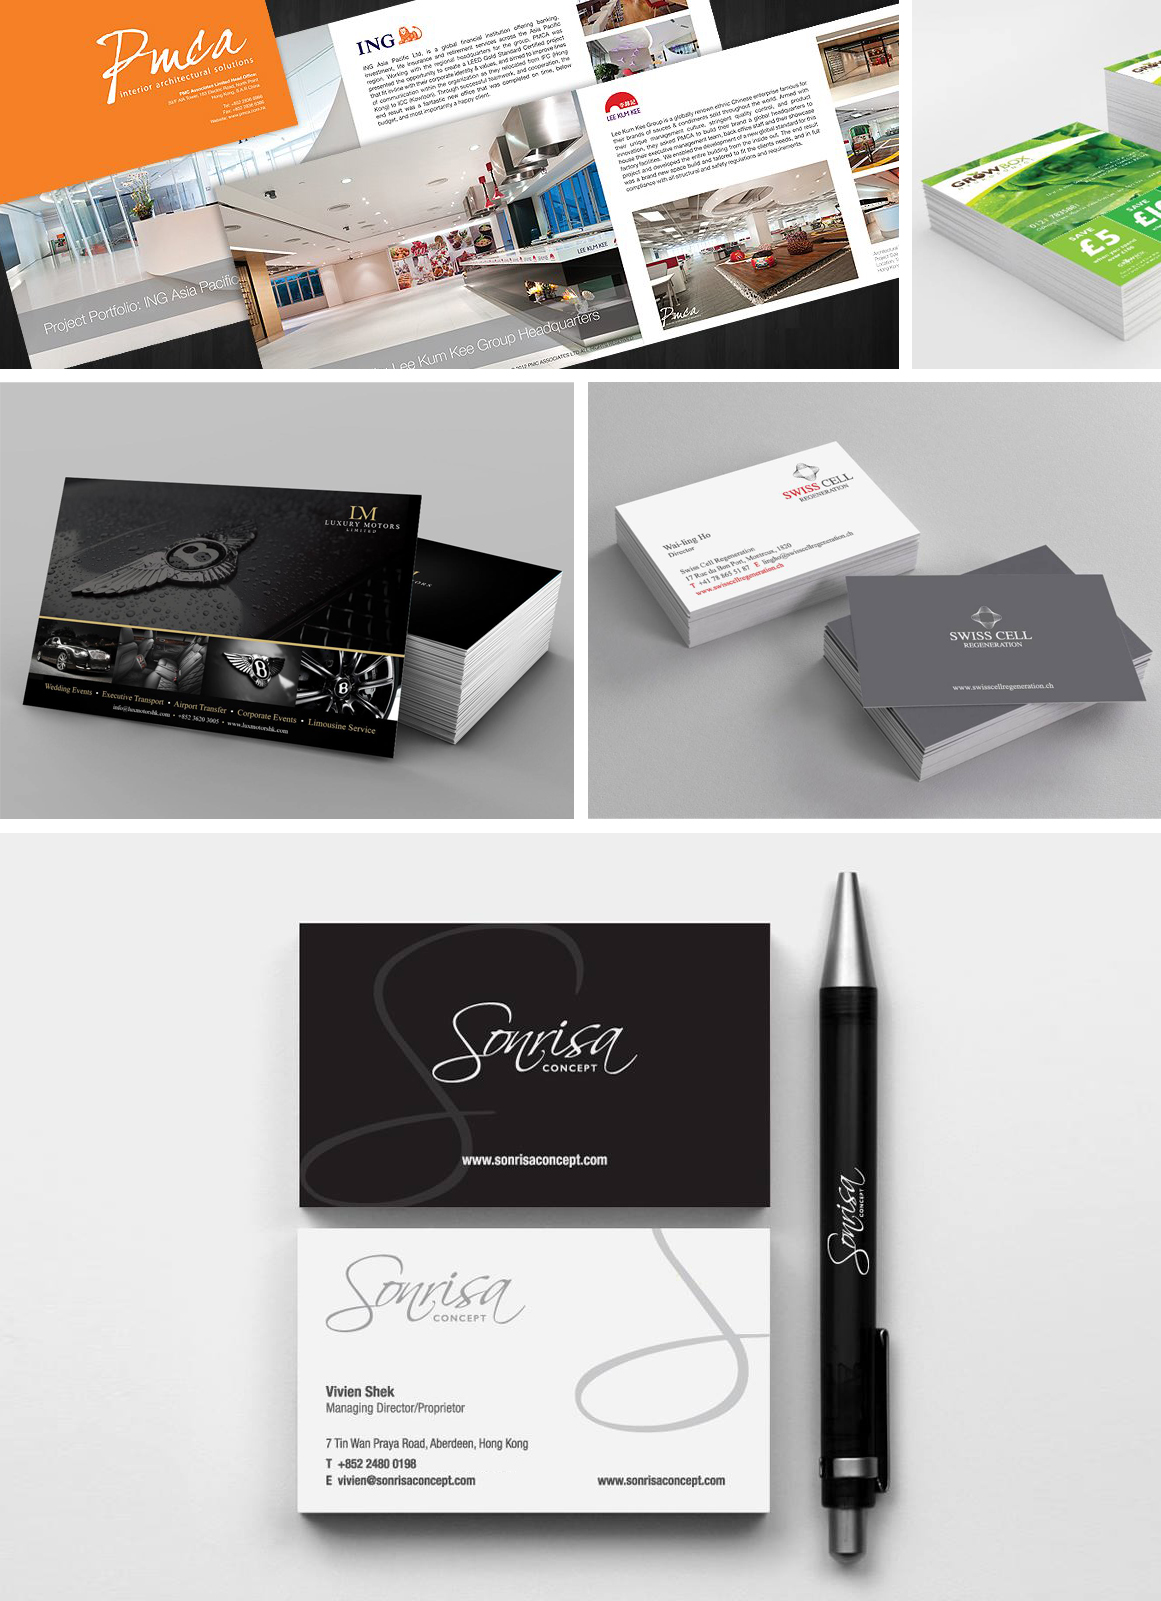 Graphic Design Company in Hong Kong